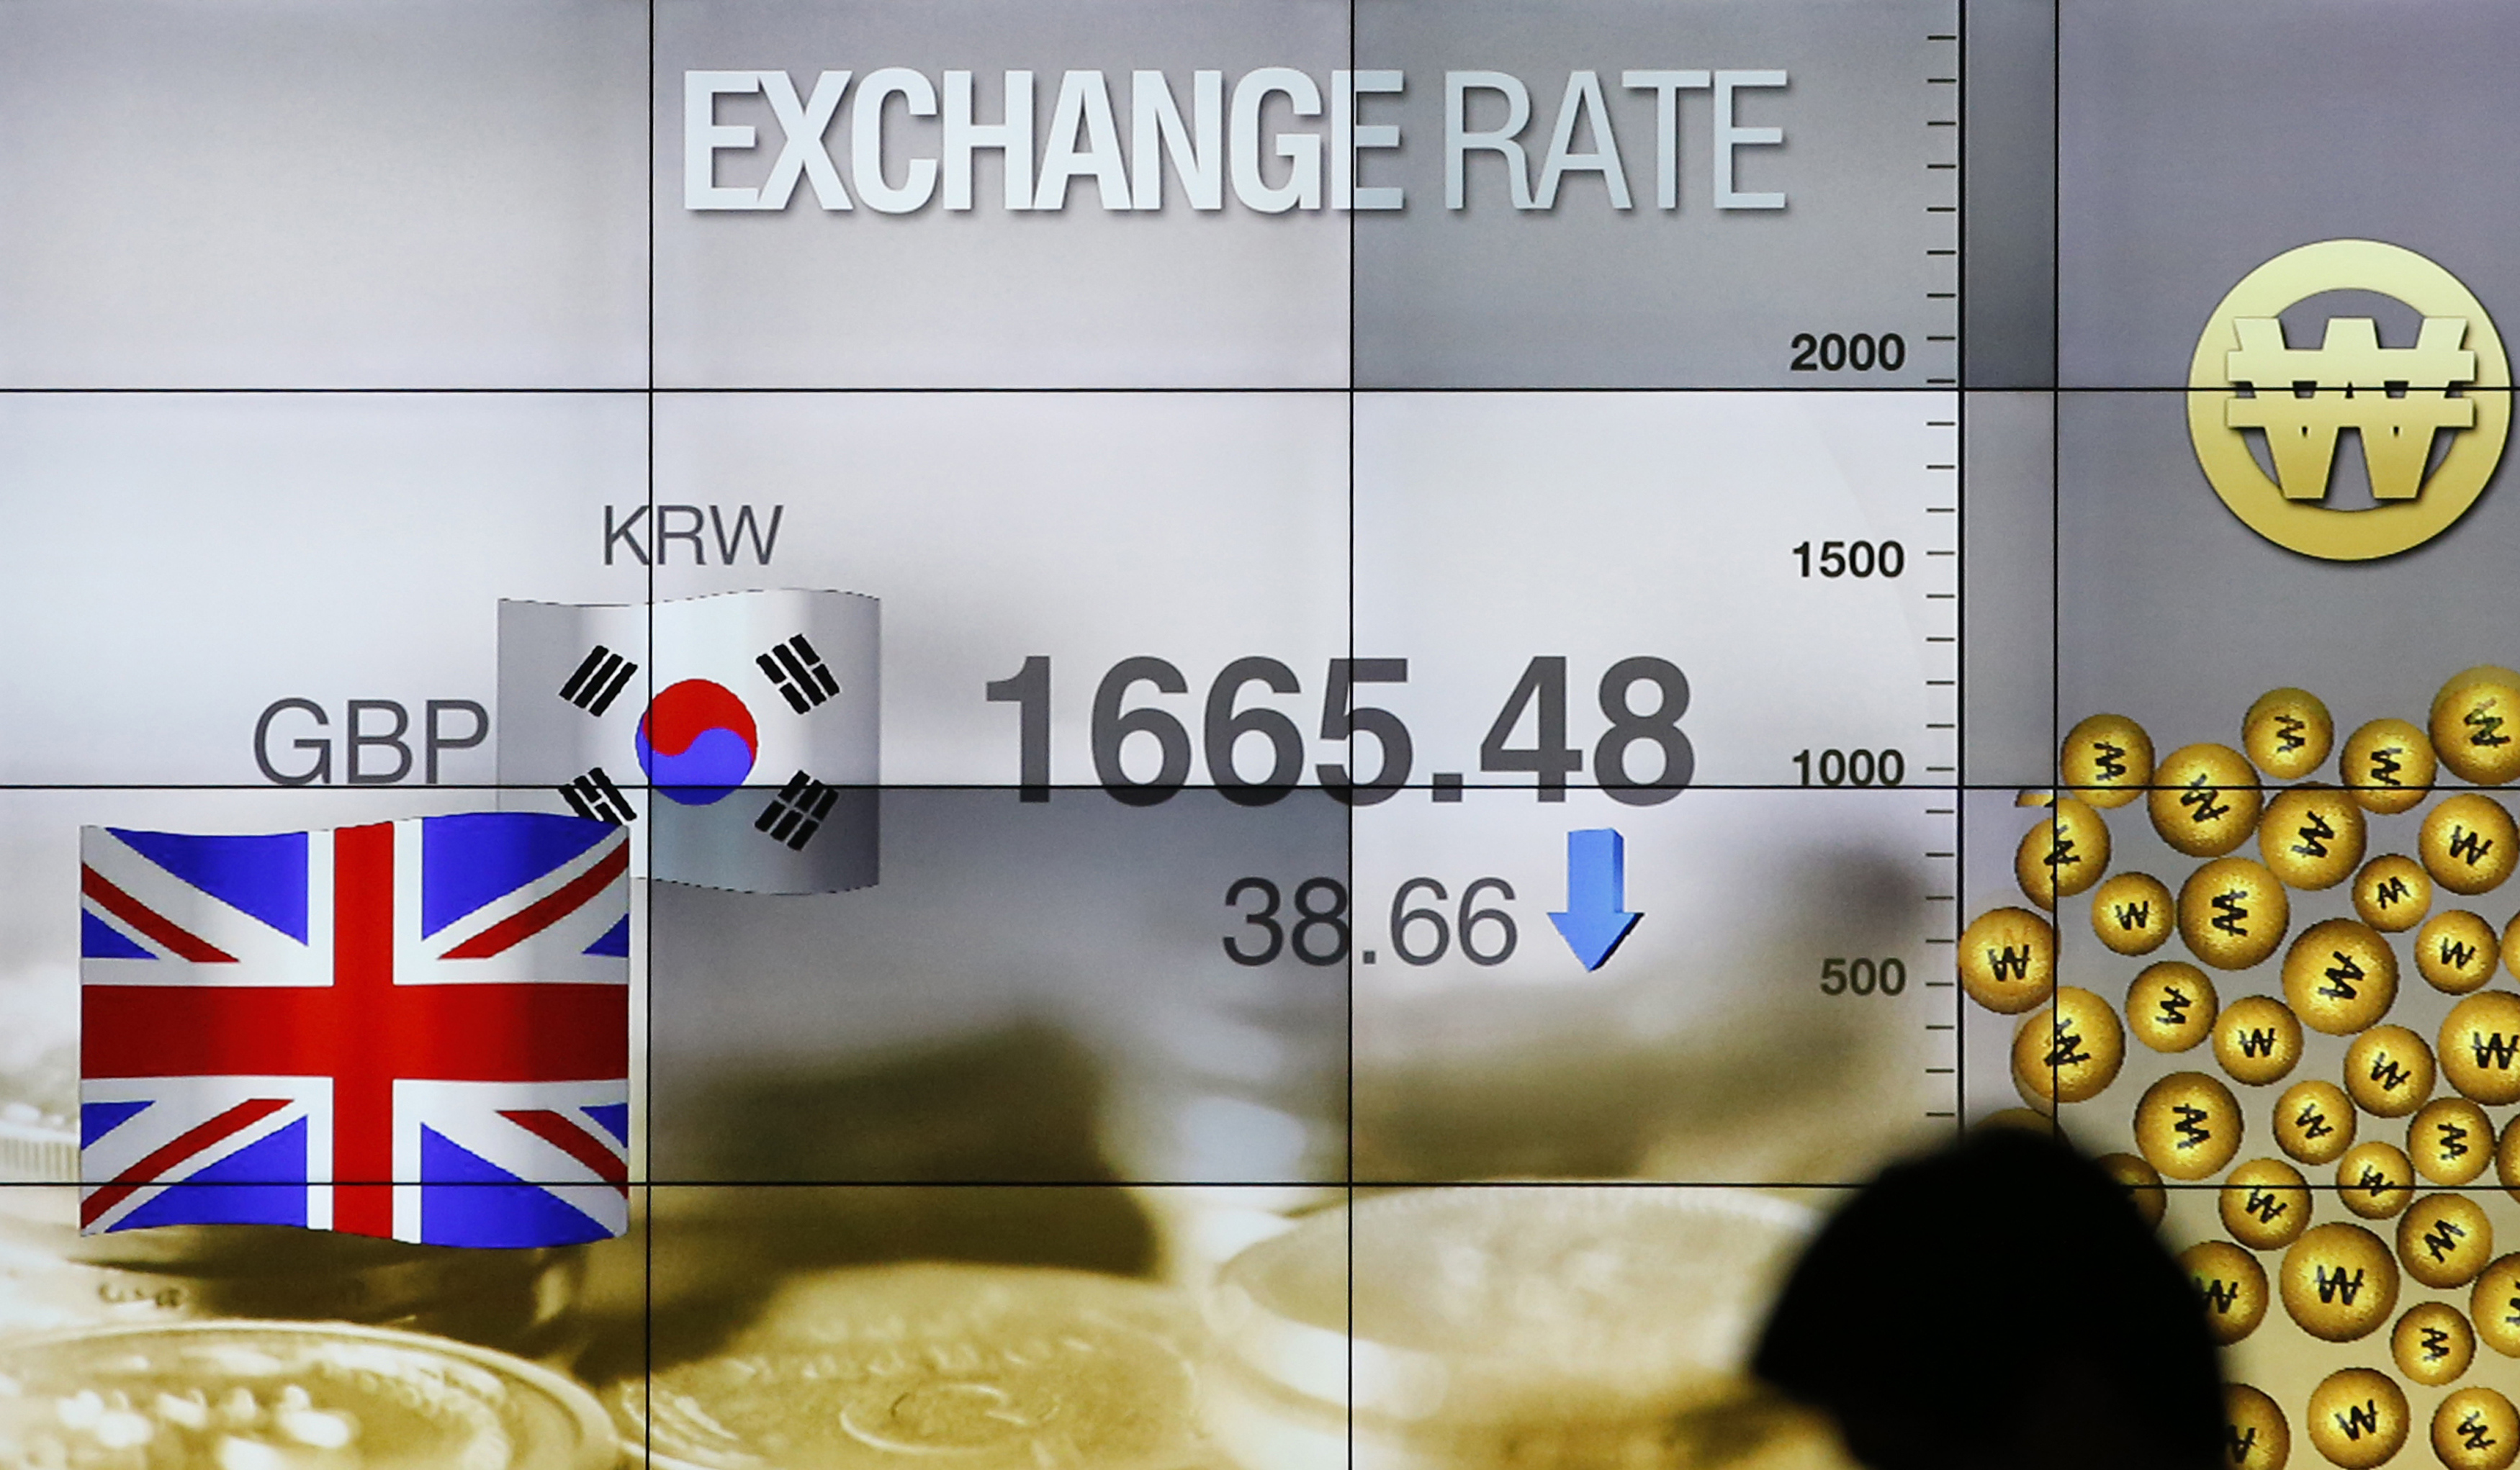 A man walks by the screen showing the foreign exchange rate between British Pound and South Korean Won in Seoul, South Korea, Friday, June 24, 2016. World financial markets were rocked Friday by Britain's unprecedented vote to leave the European Union, with stock markets and oil prices crashing and the pound hitting its lowest level in three decades. (AP Photo/Lee Jin-man)